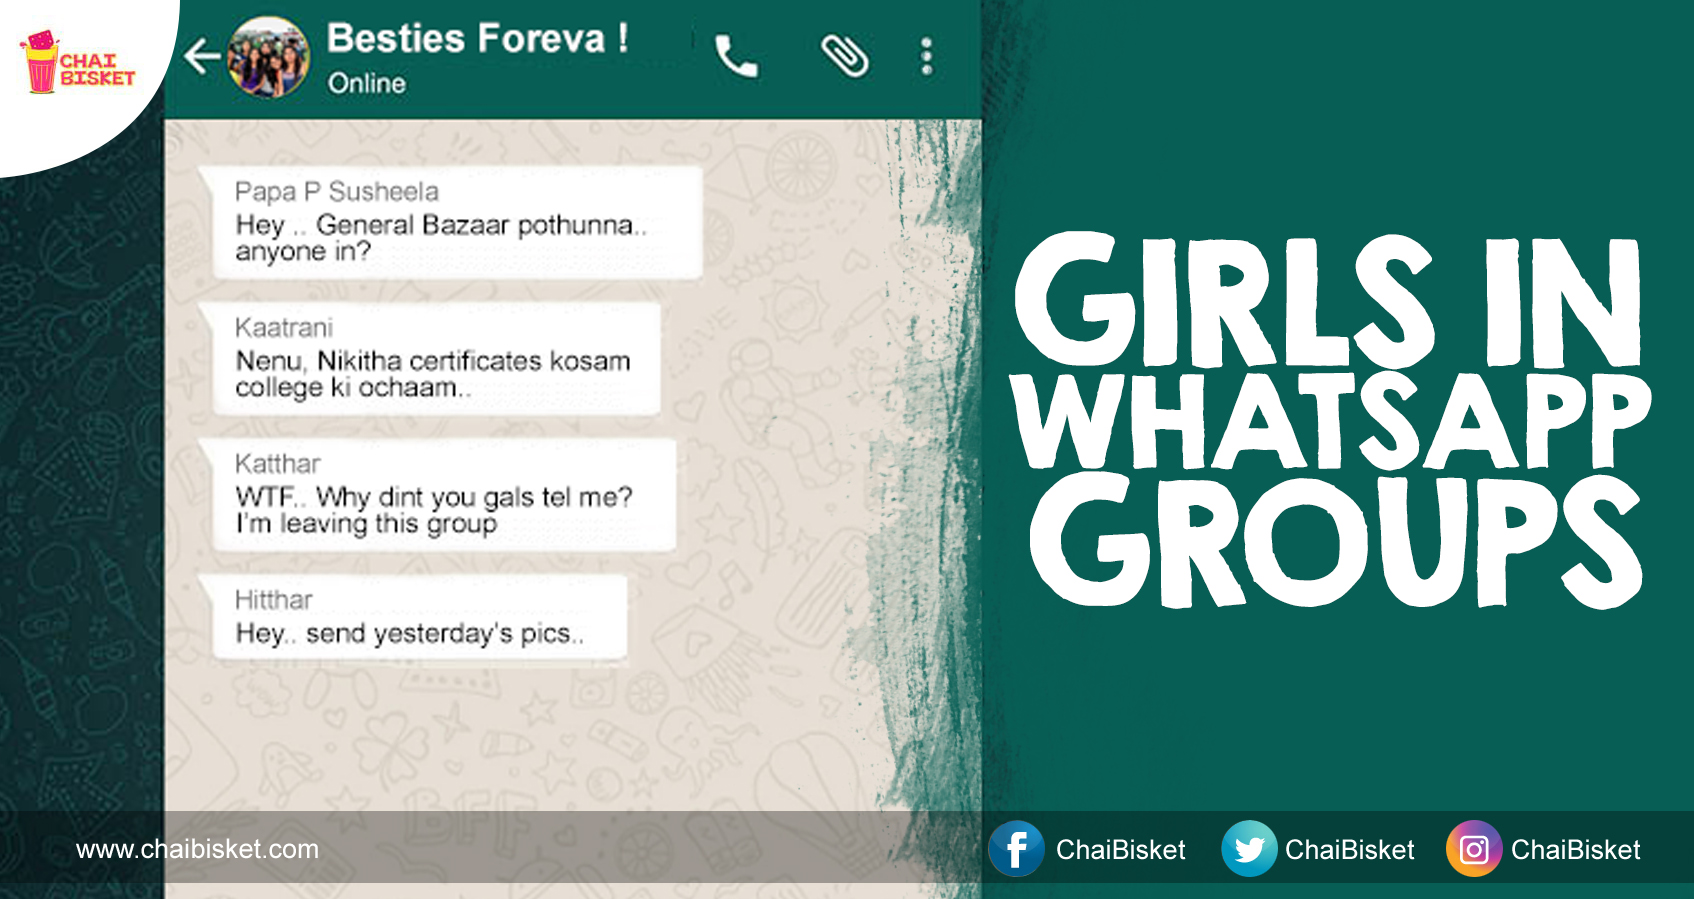 14 Types Of Girls You Find In Every WhatsApp Group That Has Only